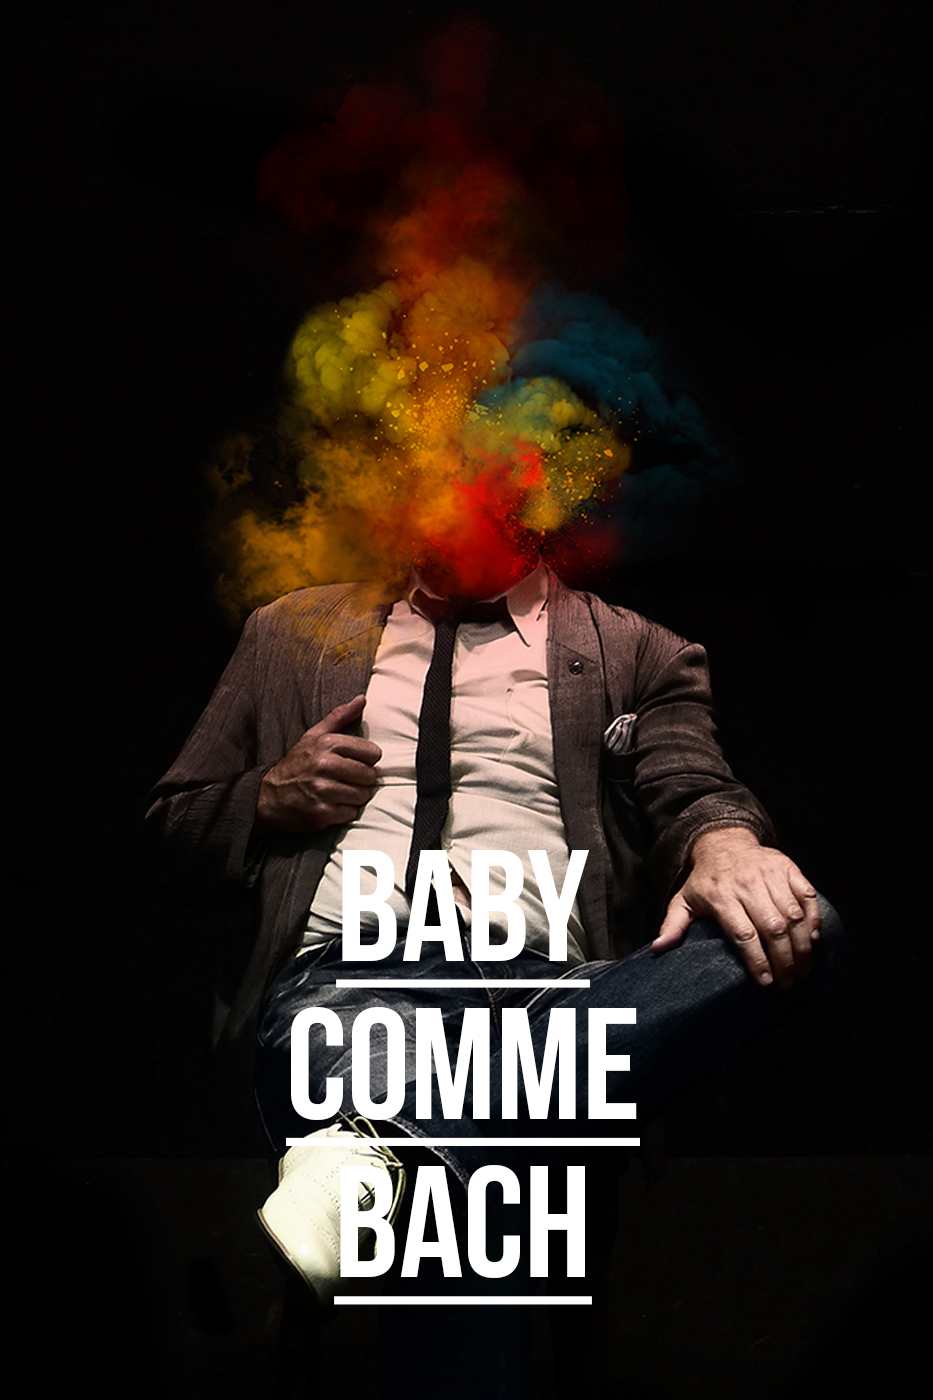 BABY COMME BACH